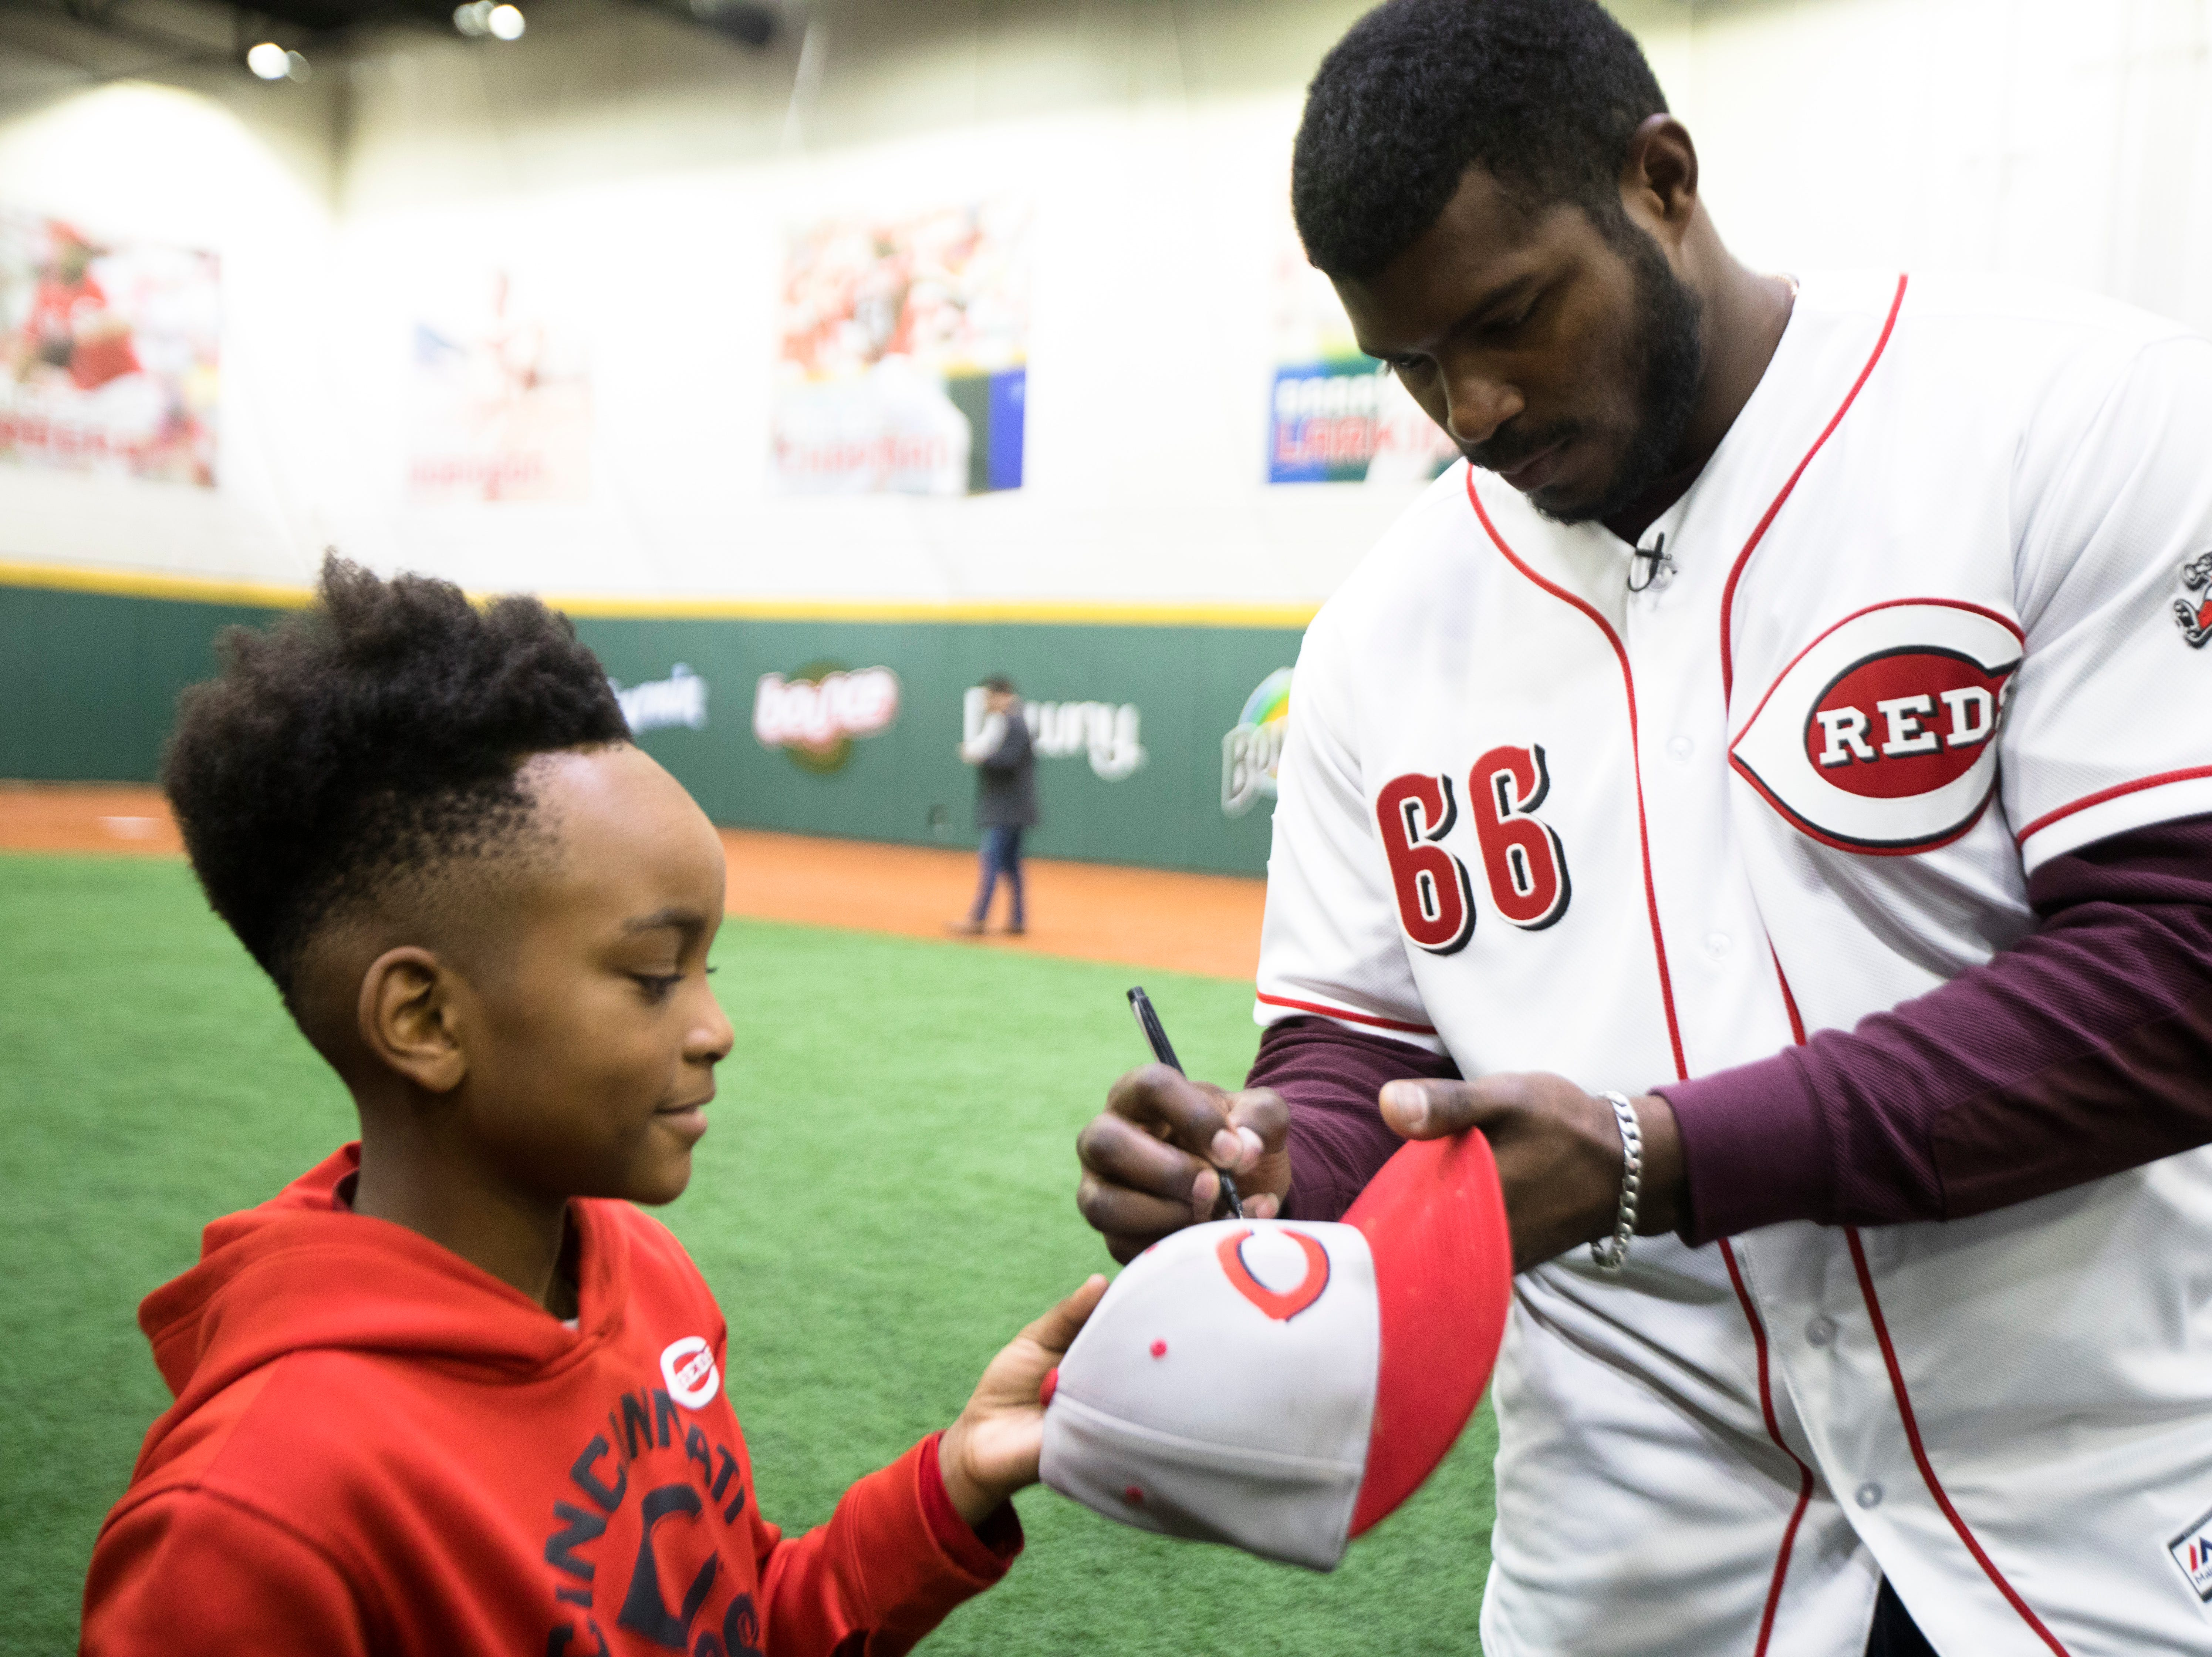 Yasiel Puig, who has been traded to the Cincinnati Reds from the LA Dodgers, signs a hat for a young athlete the P&G MLB Cincinnati Reds Youth Academy on Wednesday, Jan. 30, 2019.